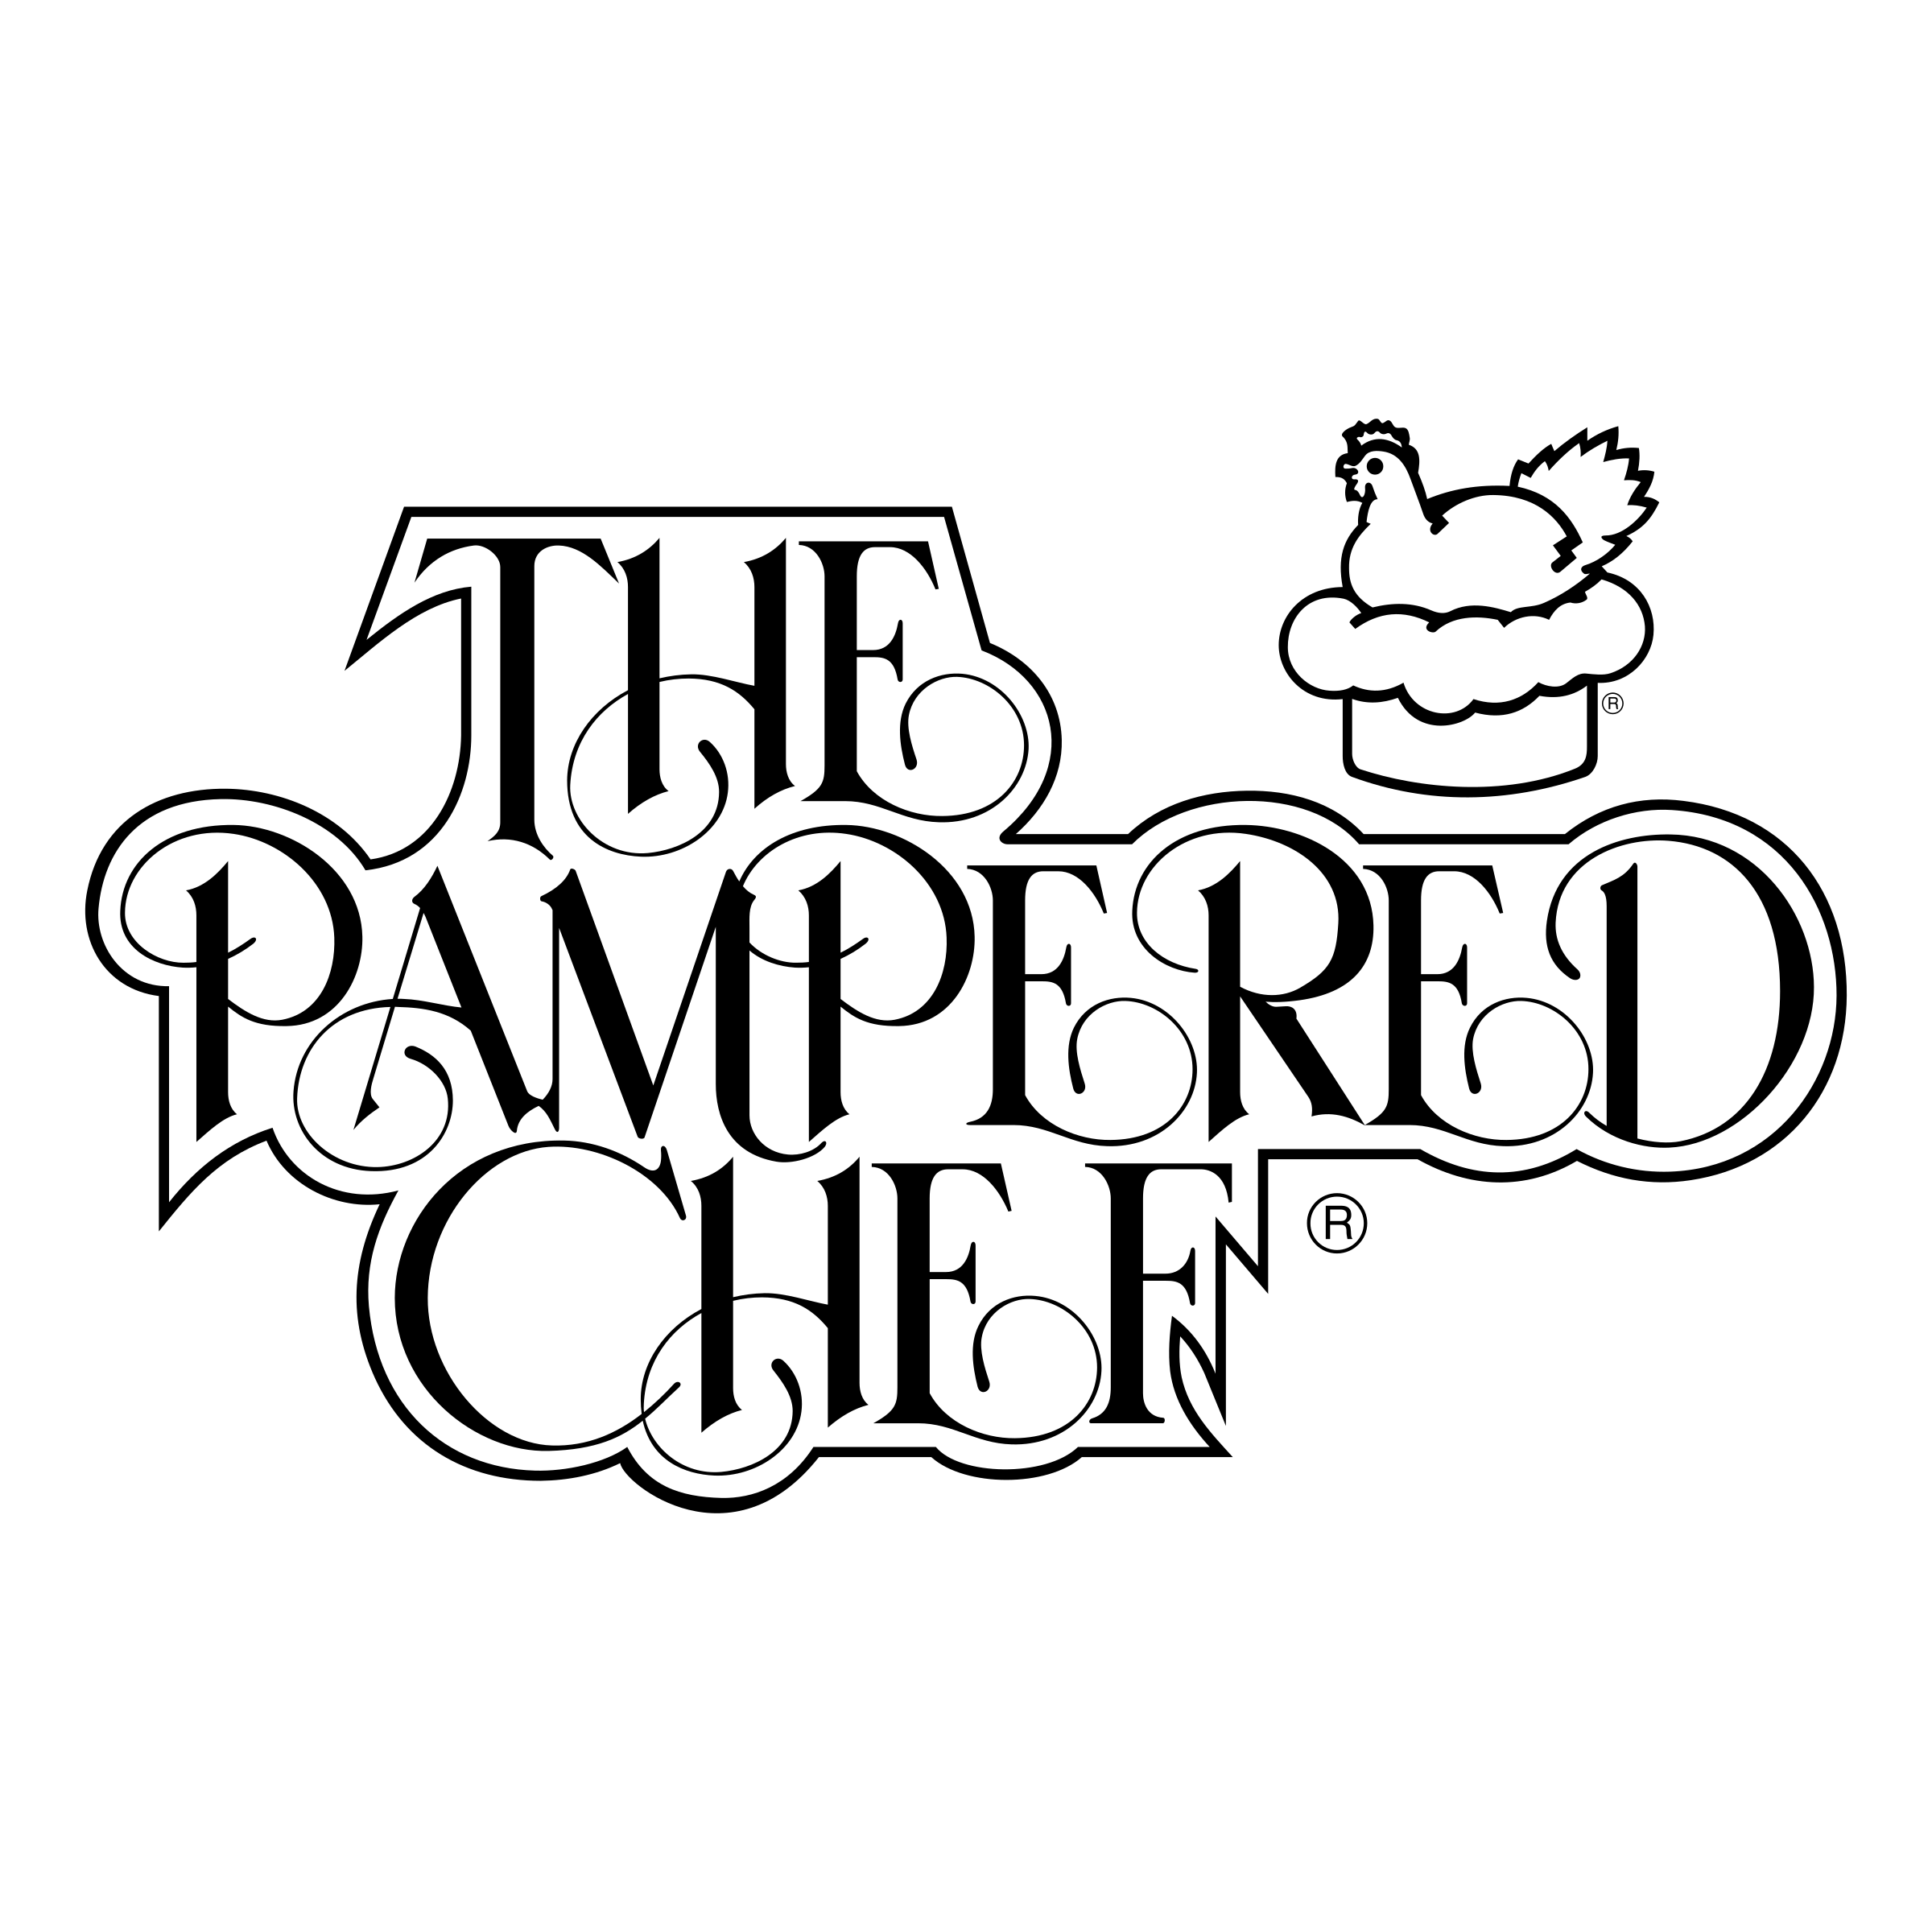 the pampered chef logo png transparent svg vector freebie supply rh freebiesupply com pampered chef logo vector pampered chef logo history